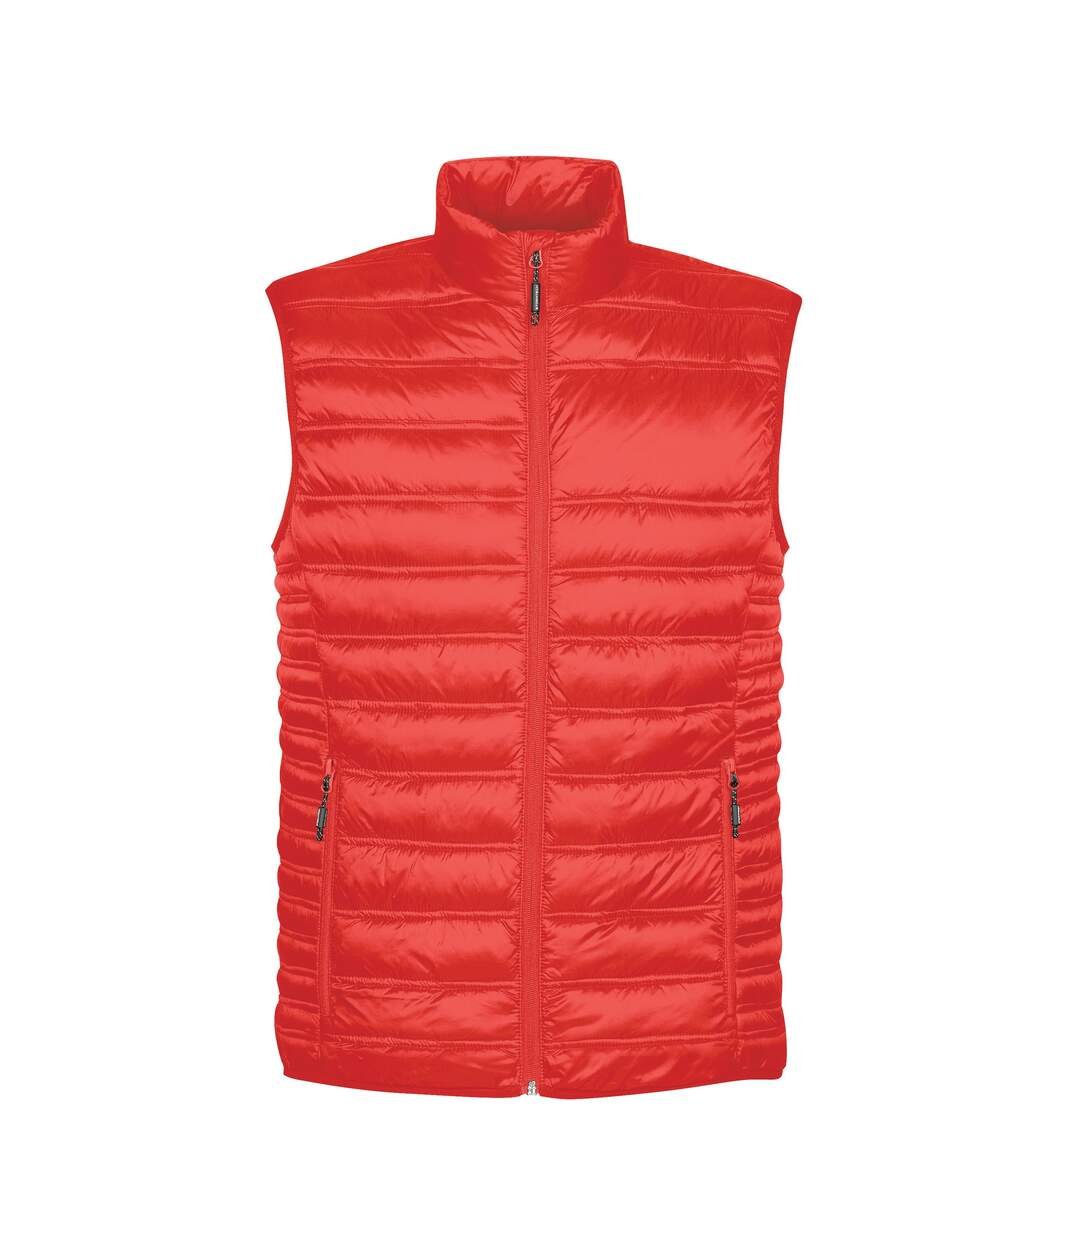 Stormtech Mens Basecamp Thermal Quilted Gilet (Red) - UTRW5479